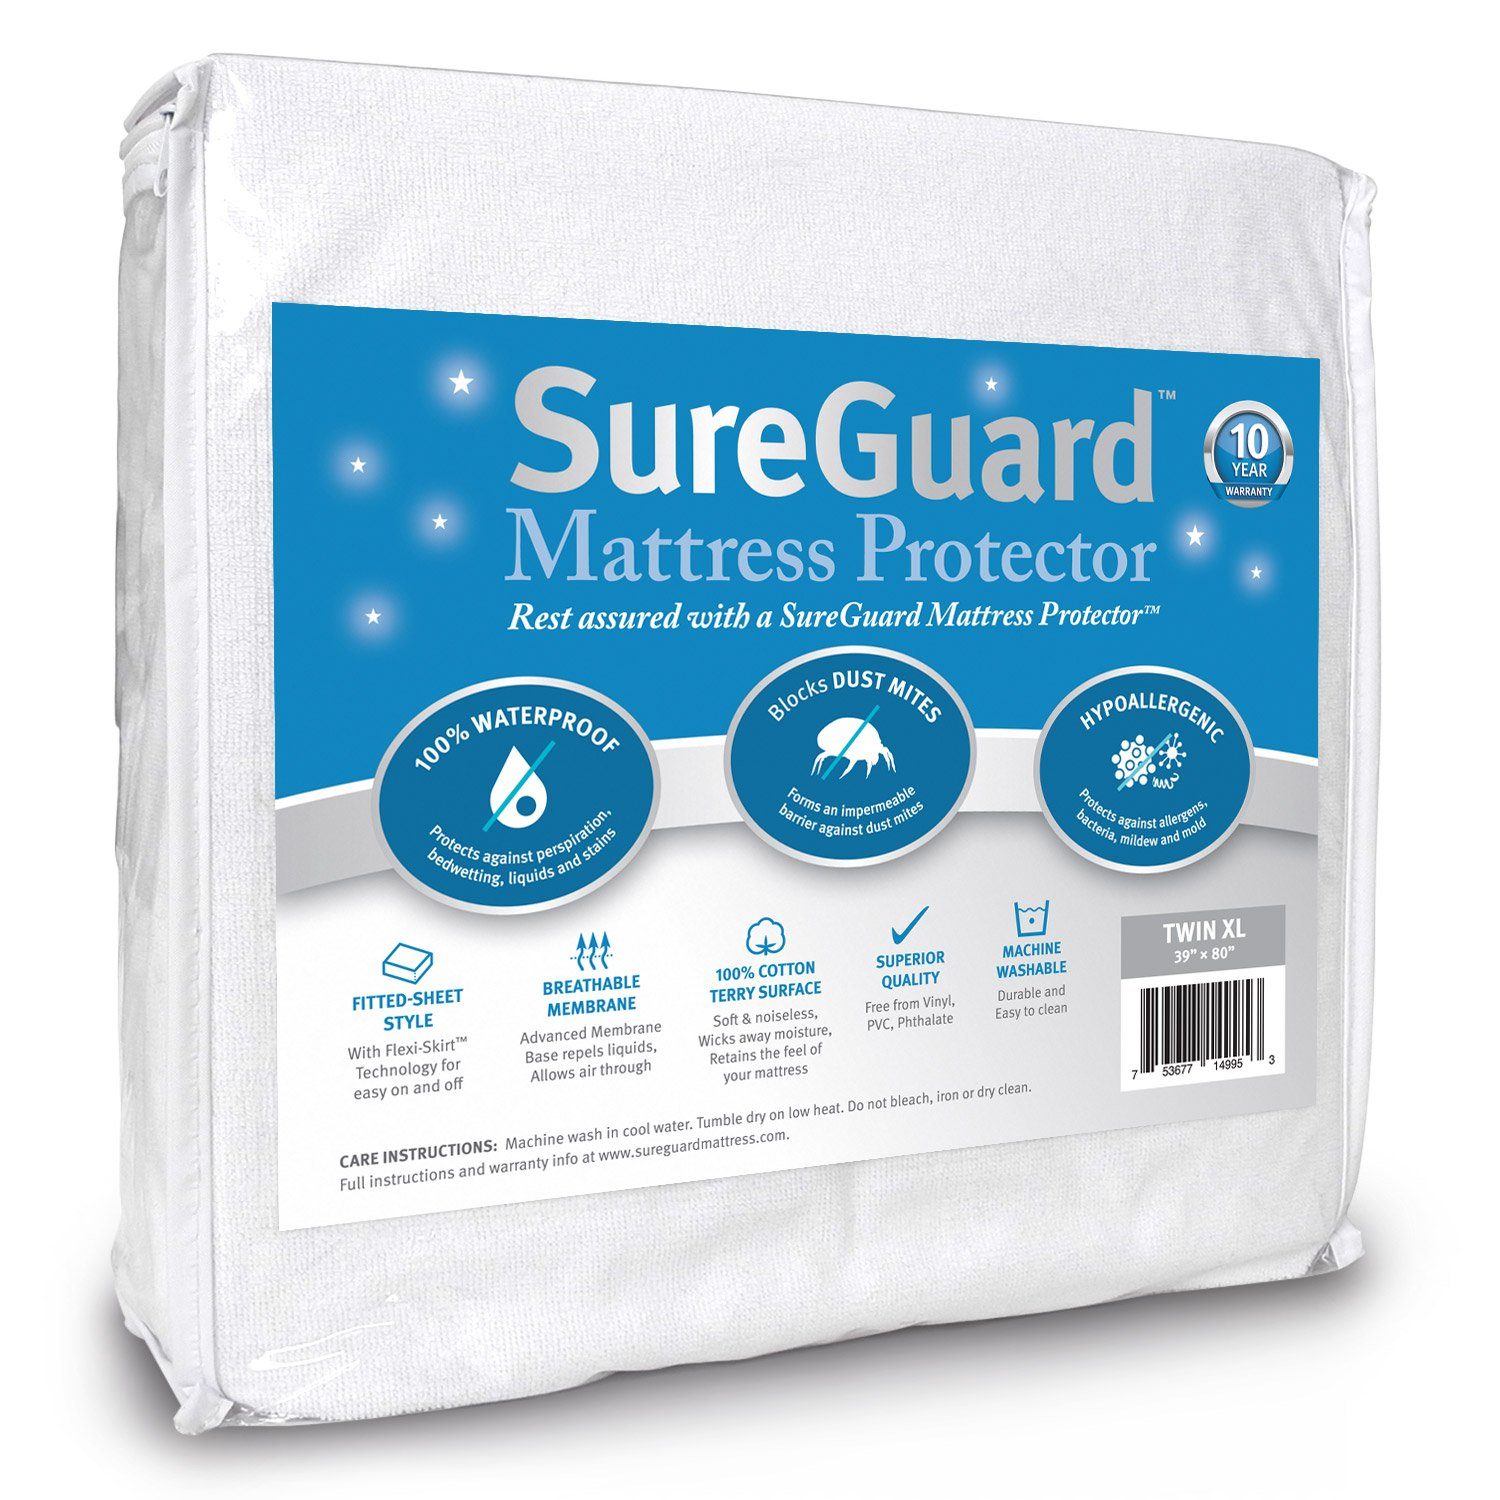 SureGuard Mattress Protectors Twin Extra Long (XL) 100% Waterproof, Hypoallergenic - Premium Fitted Cotton Terry Cover - 10 Year Warranty